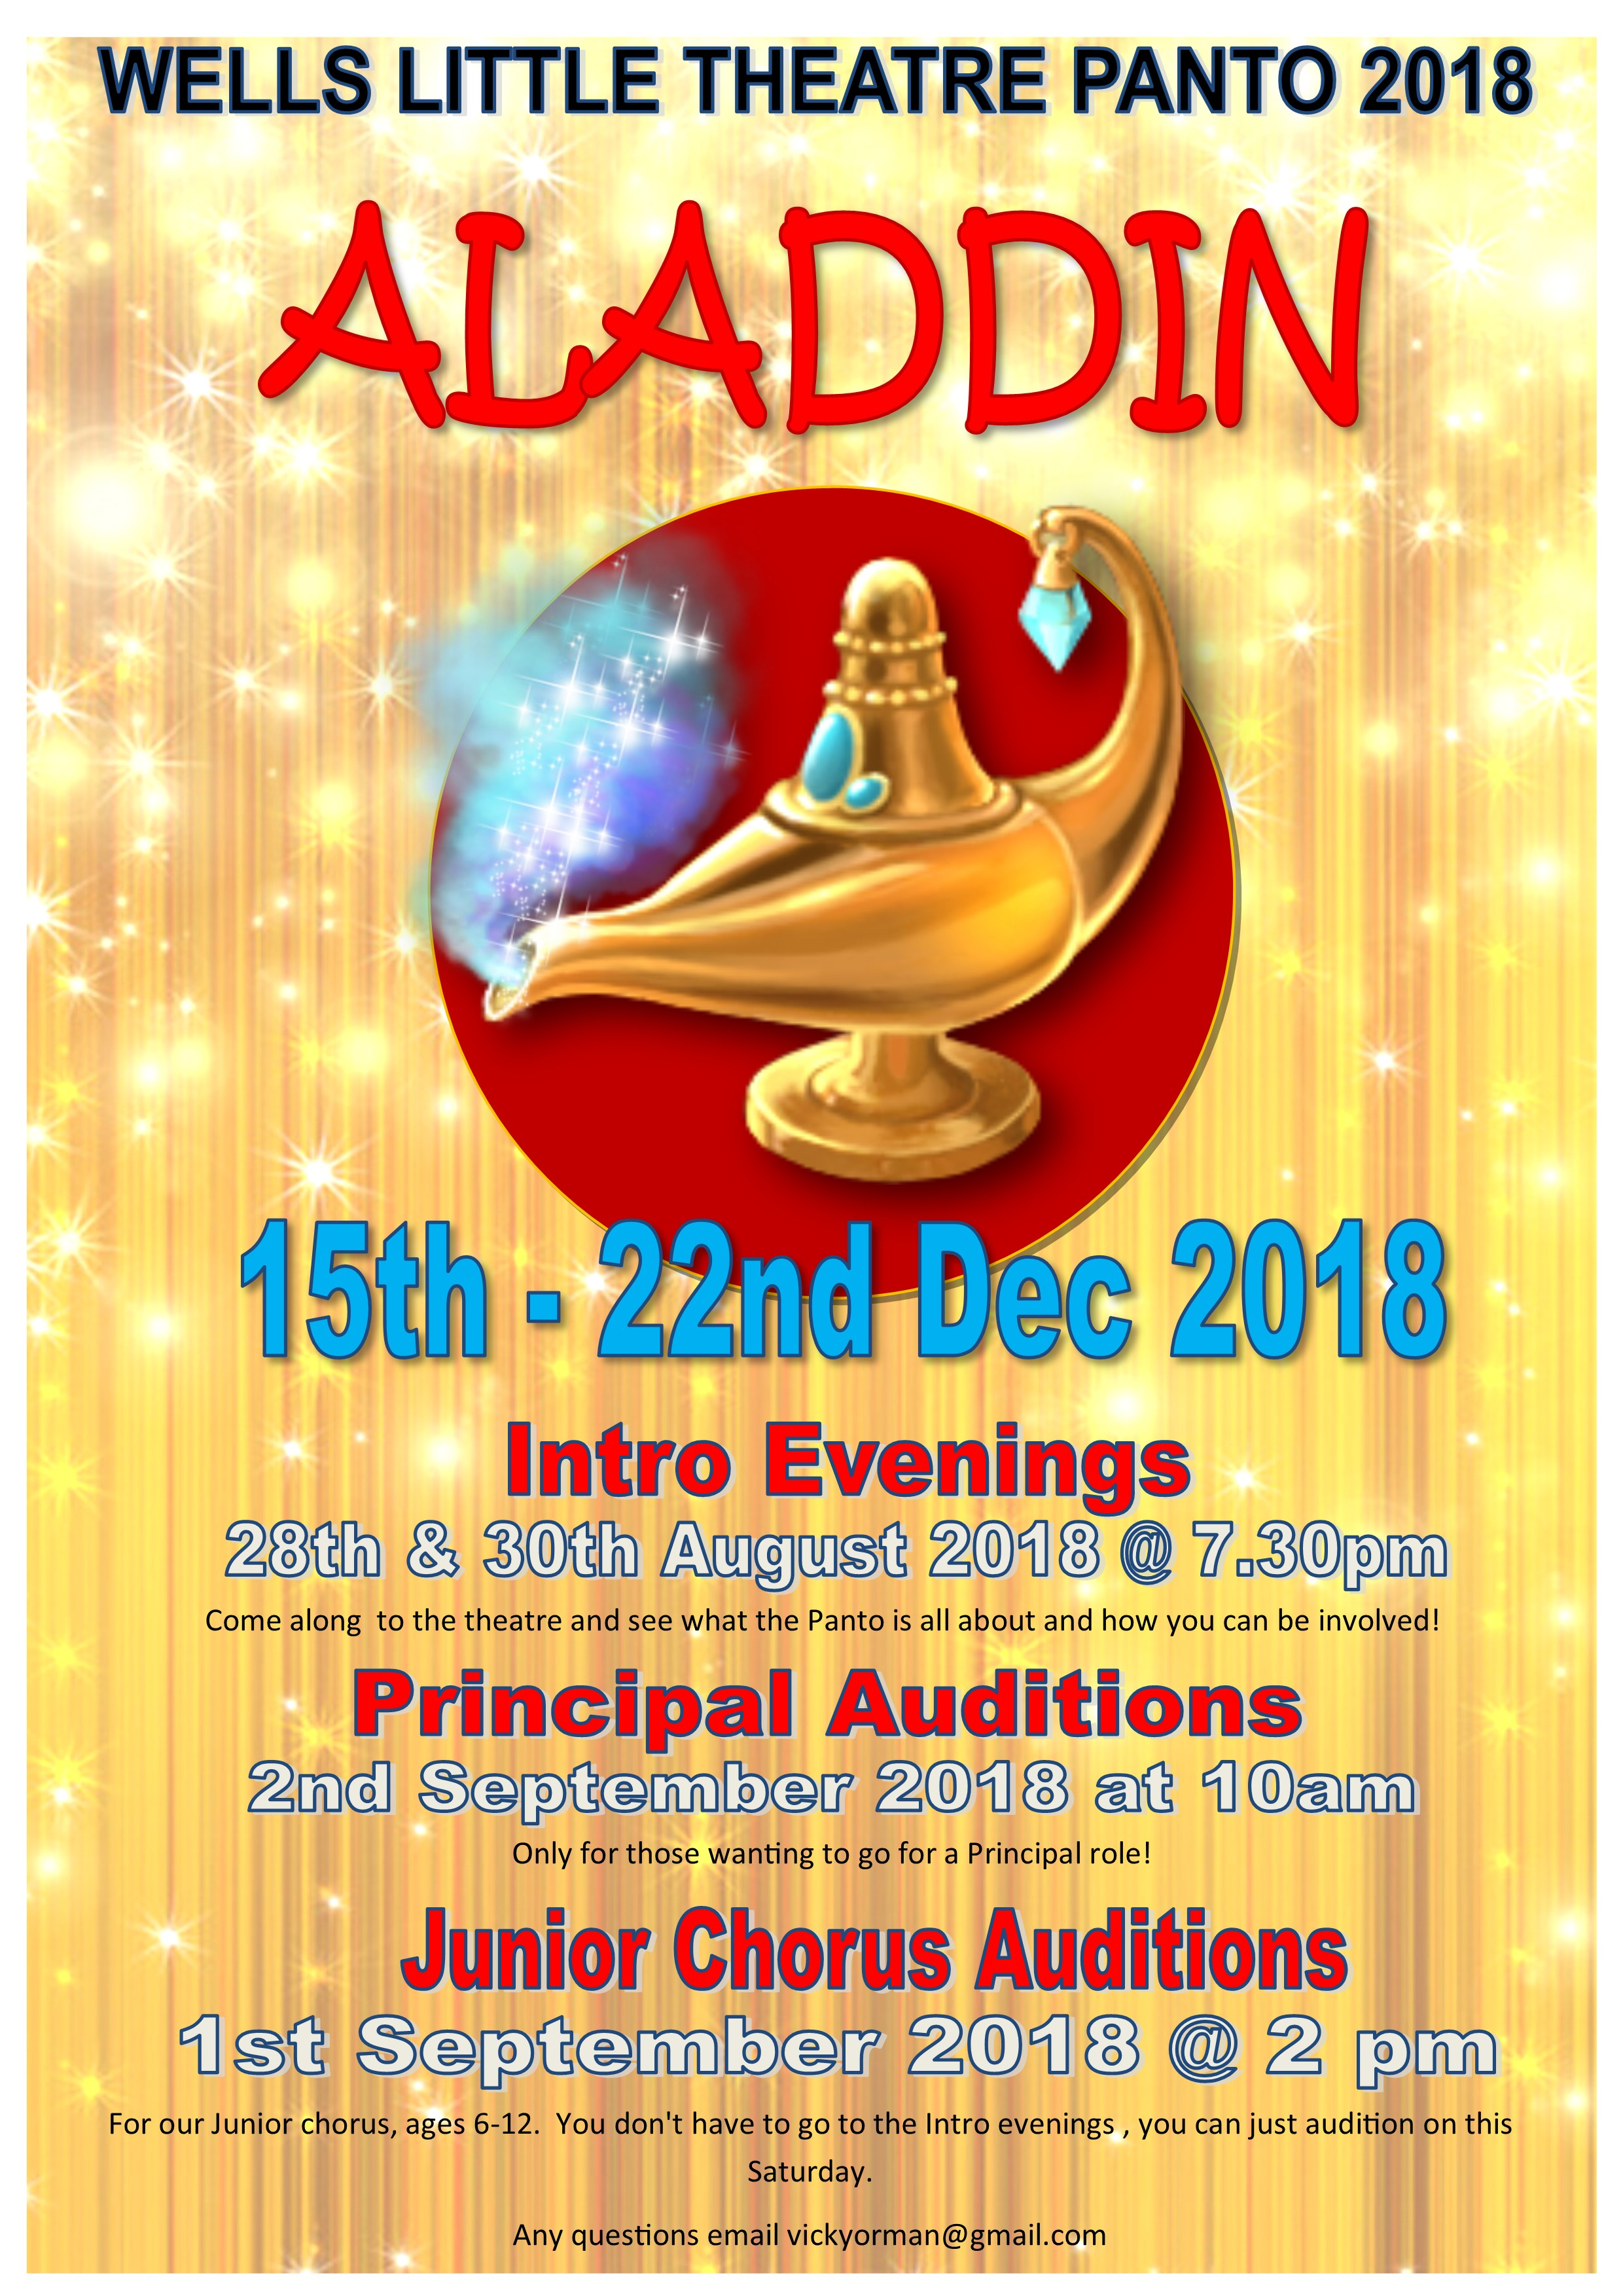 Aladdin Introduction Evening 1